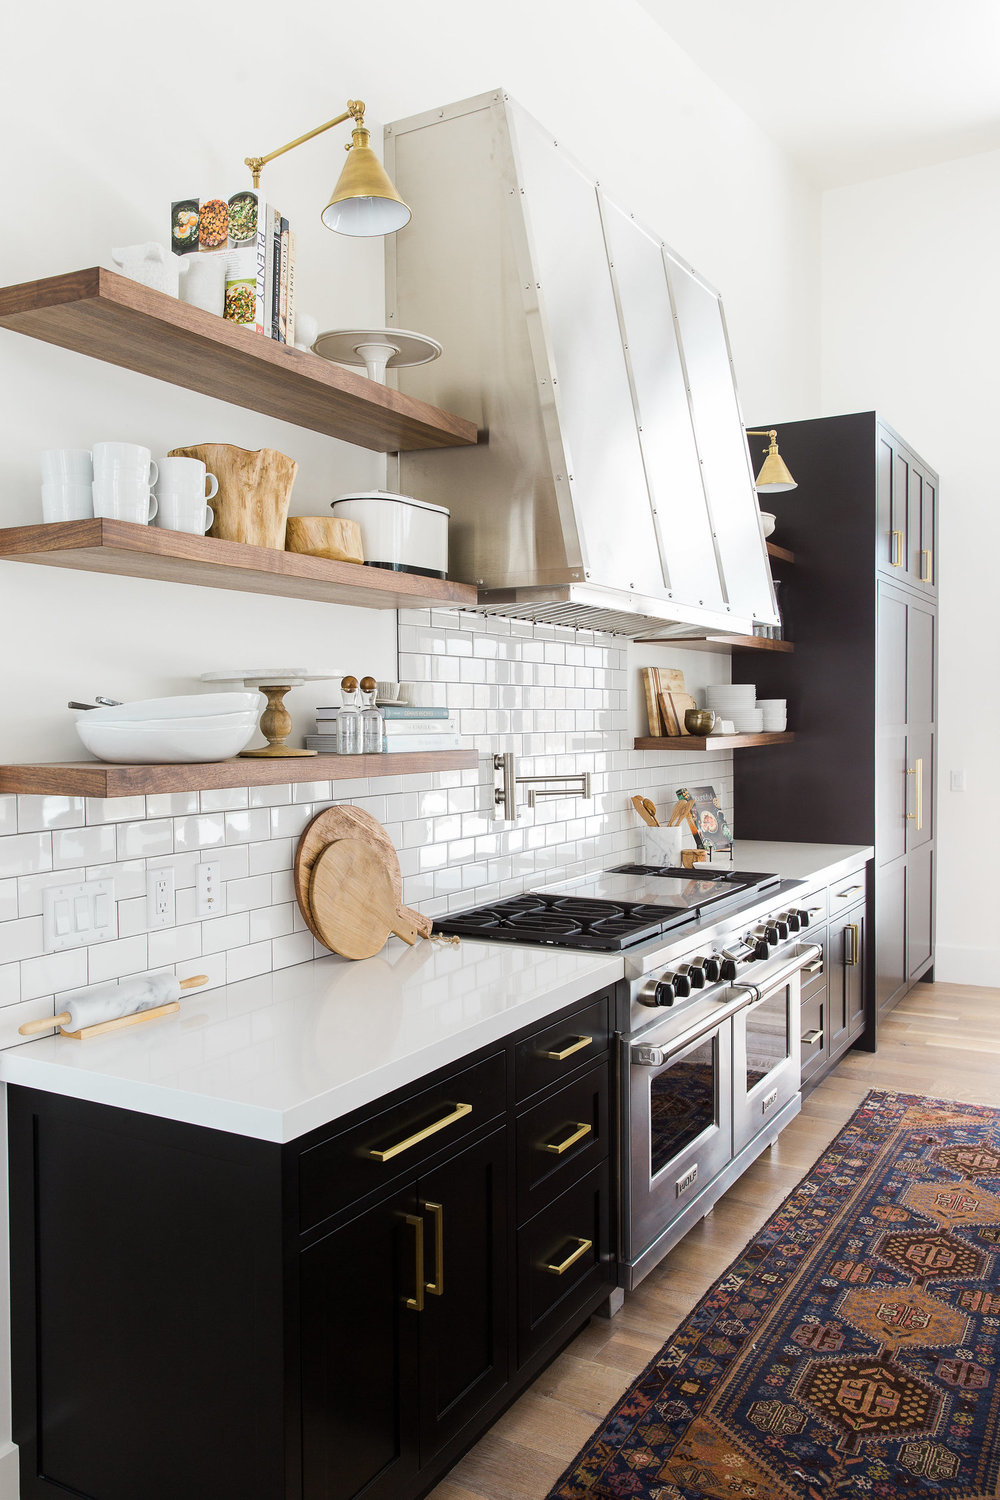 Notice that in this stunning black and white kitchen by   Studio McGee  , how stainless appliances, hood, and faucets are beautifully mixed with brass cabinet hardware and light sconces.